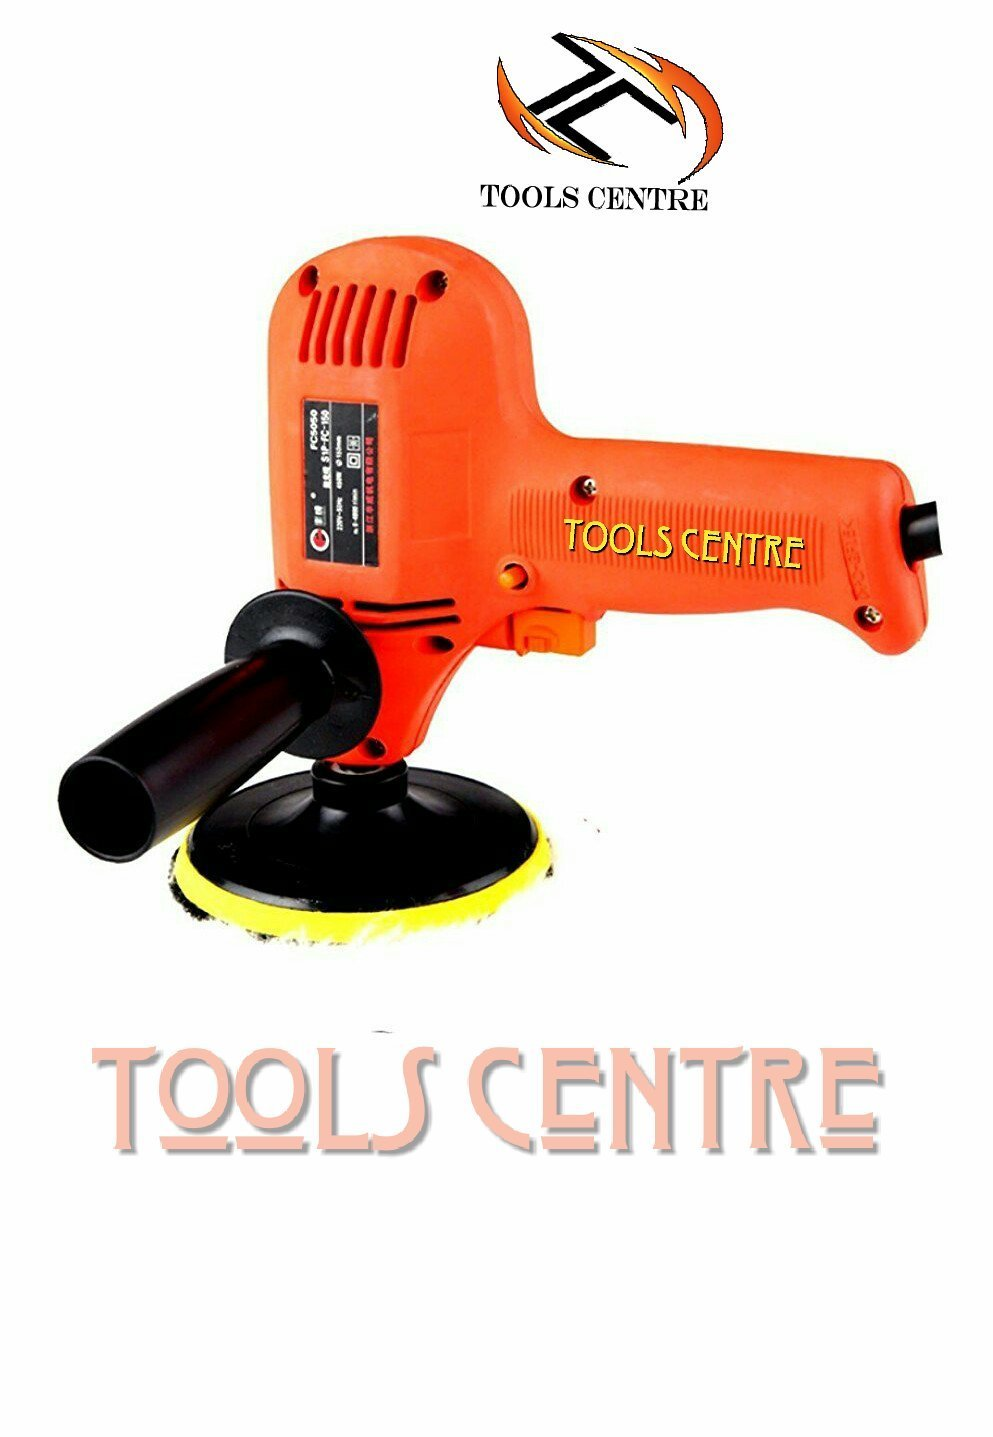 Toolscentre All In One Unique Combo Electric Driller /Polisher For Drilling